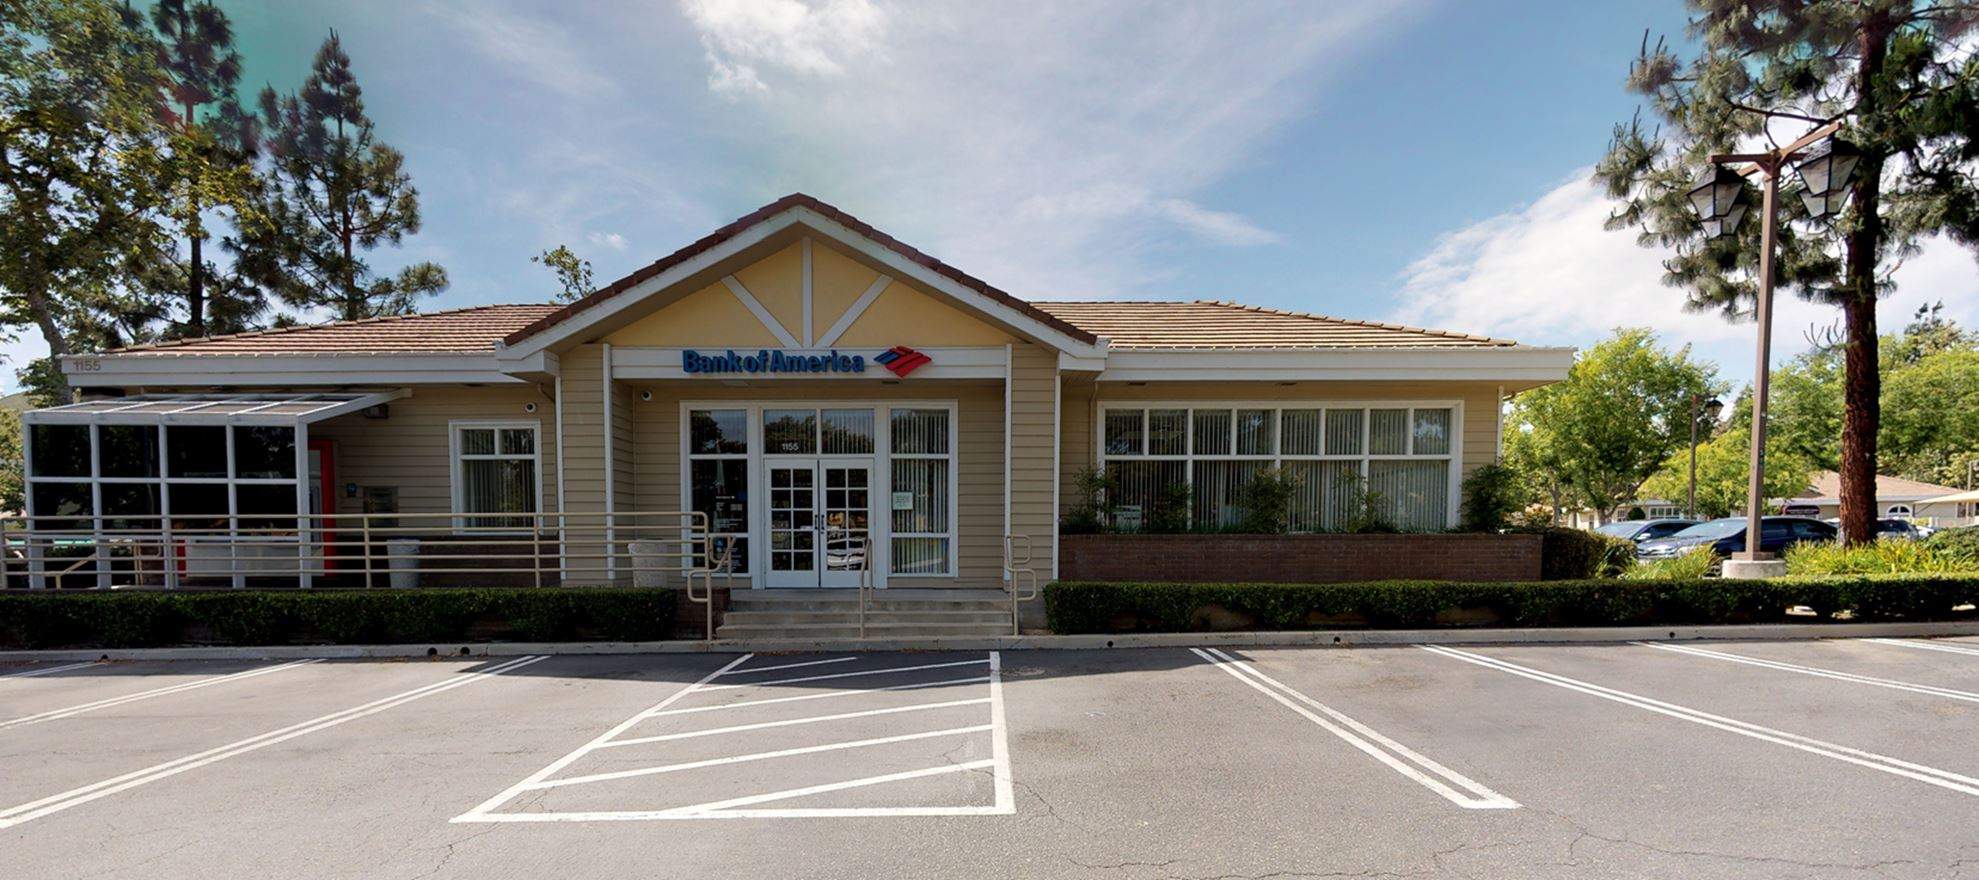 Bank of America financial center with walk-up ATM | 1155 Lindero Canyon Rd, Westlake Village, CA 91362